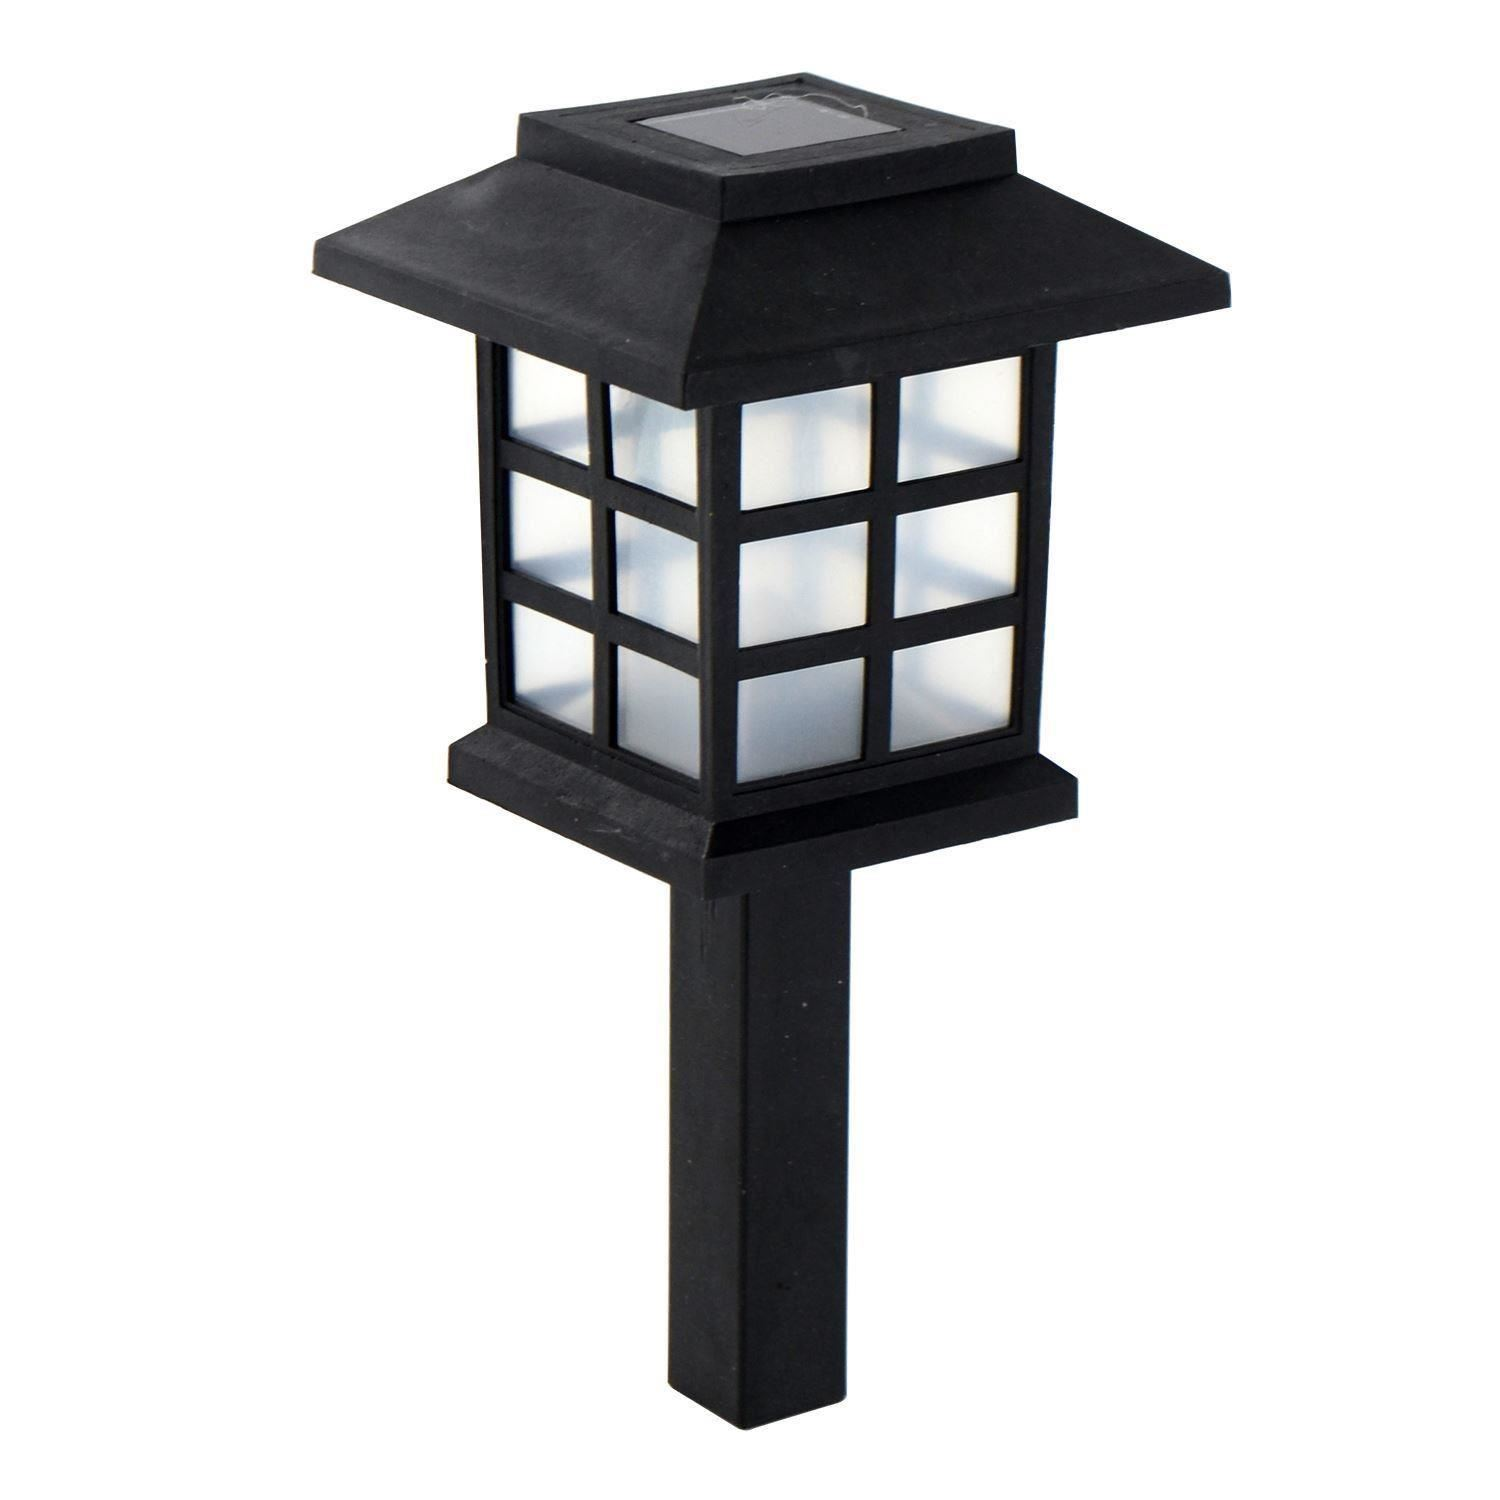 Solar powered carriage lights outdoor garden oriental led post stake lantern ebay for Solar exterior post lantern light